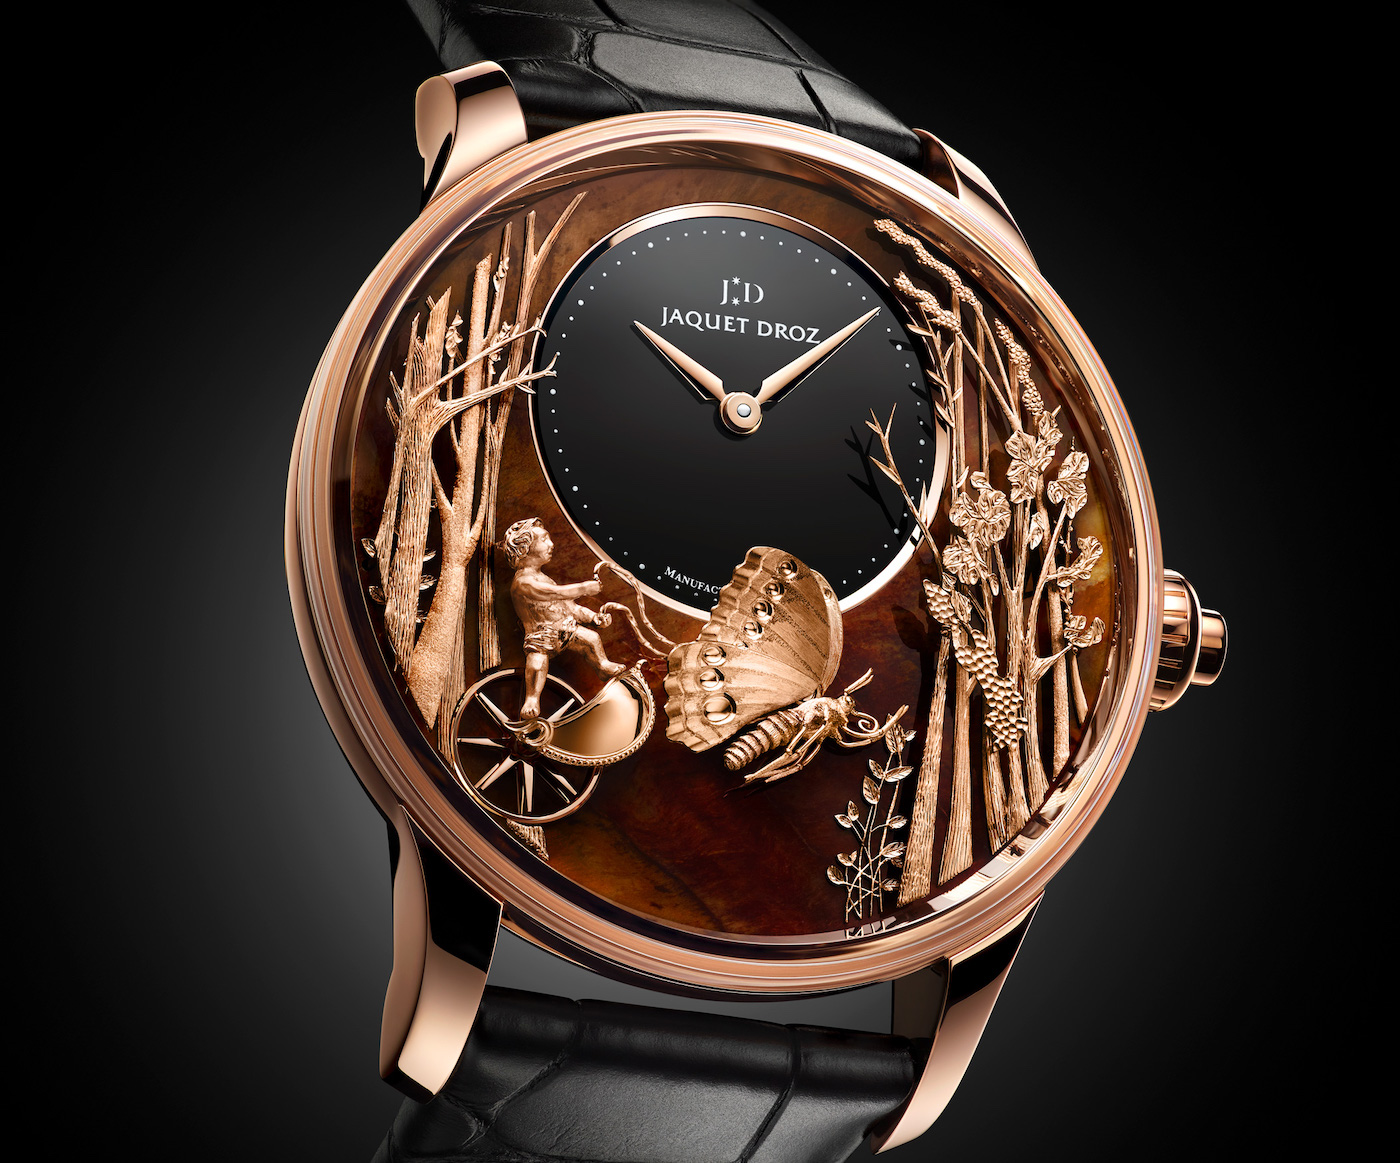 After the success of the onyx and meteorite variants, Jaquet Droz launched a new version of its Loving Butterfly Automaton this year. The dial is made of a wood petrified 140 to 180 million years ago called Chinchilla Red. The animated objet d'art is inspired by a drawing entitled Butterfly Driven by Love, which was sketched in 1774 by The Draughtsman, an automaton created by Henri-Louis Jaquet-Droz (see cover image of the article).